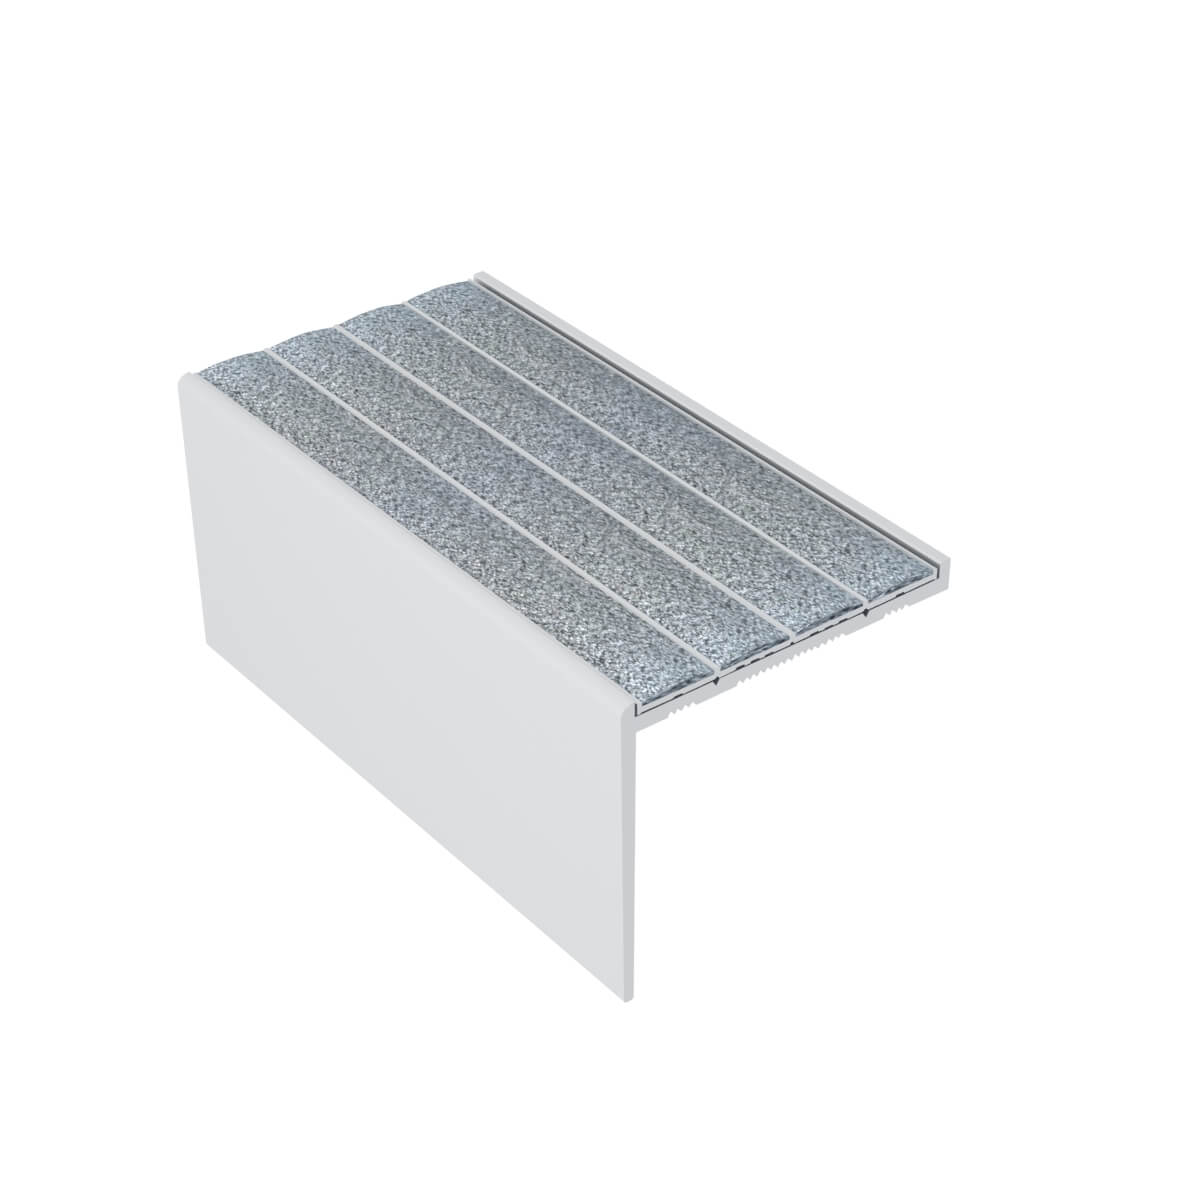 RF7B160 RESILIENT FLOORING STAIR NOSINGS